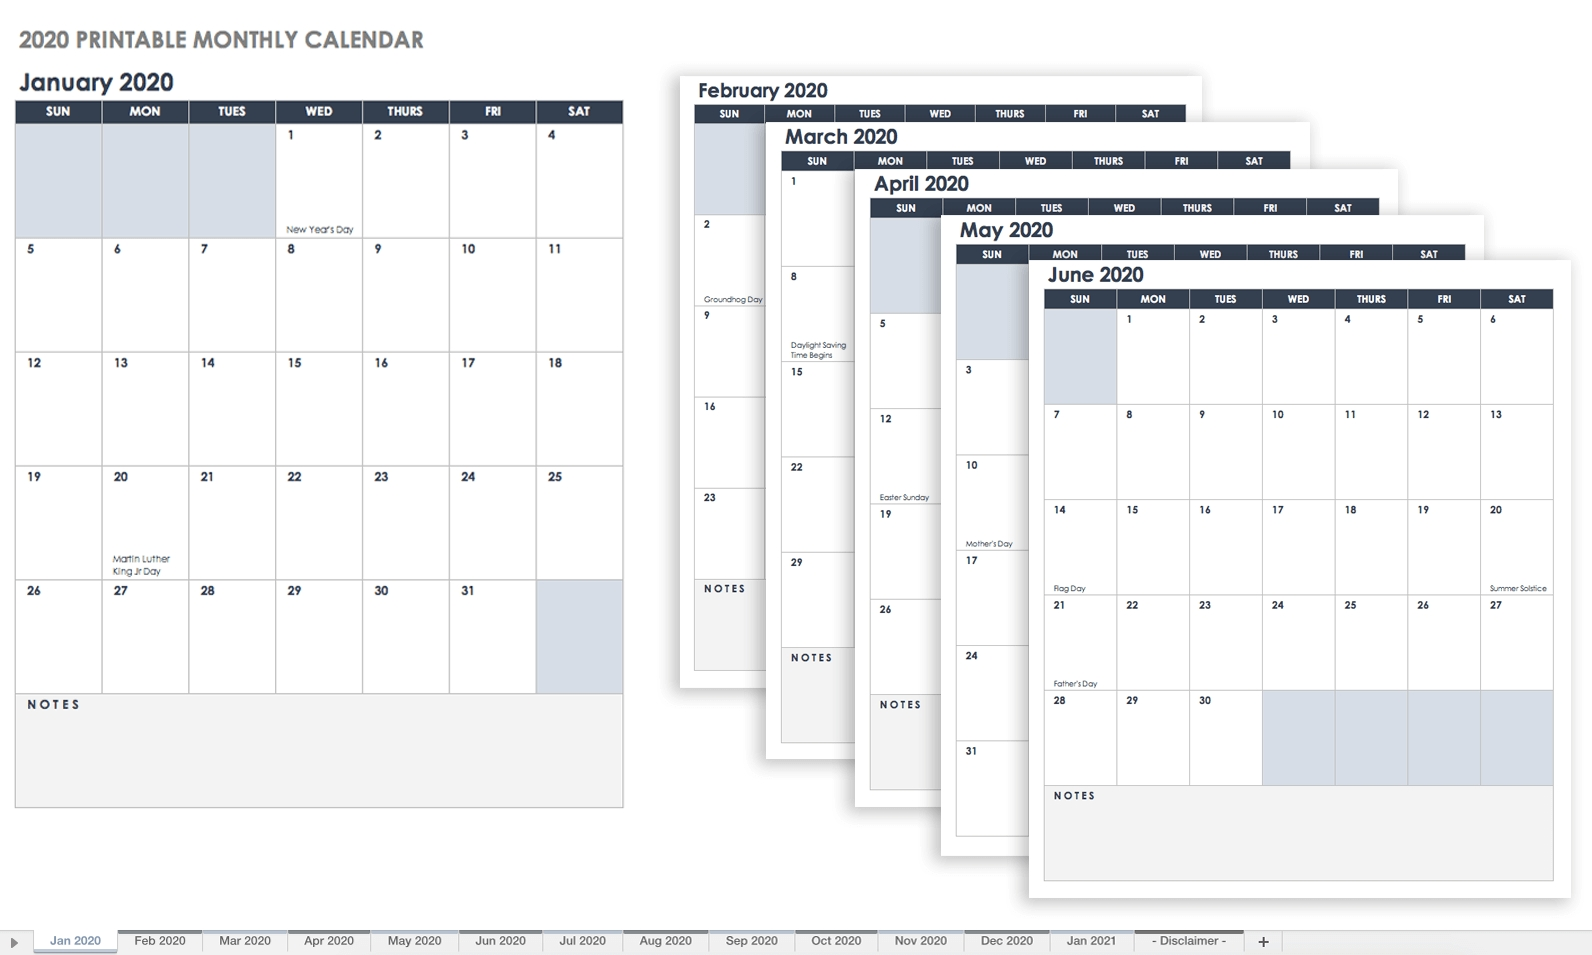 Free Blank Calendar Templates - Smartsheet within Free Editable Monthly Calendar Printable